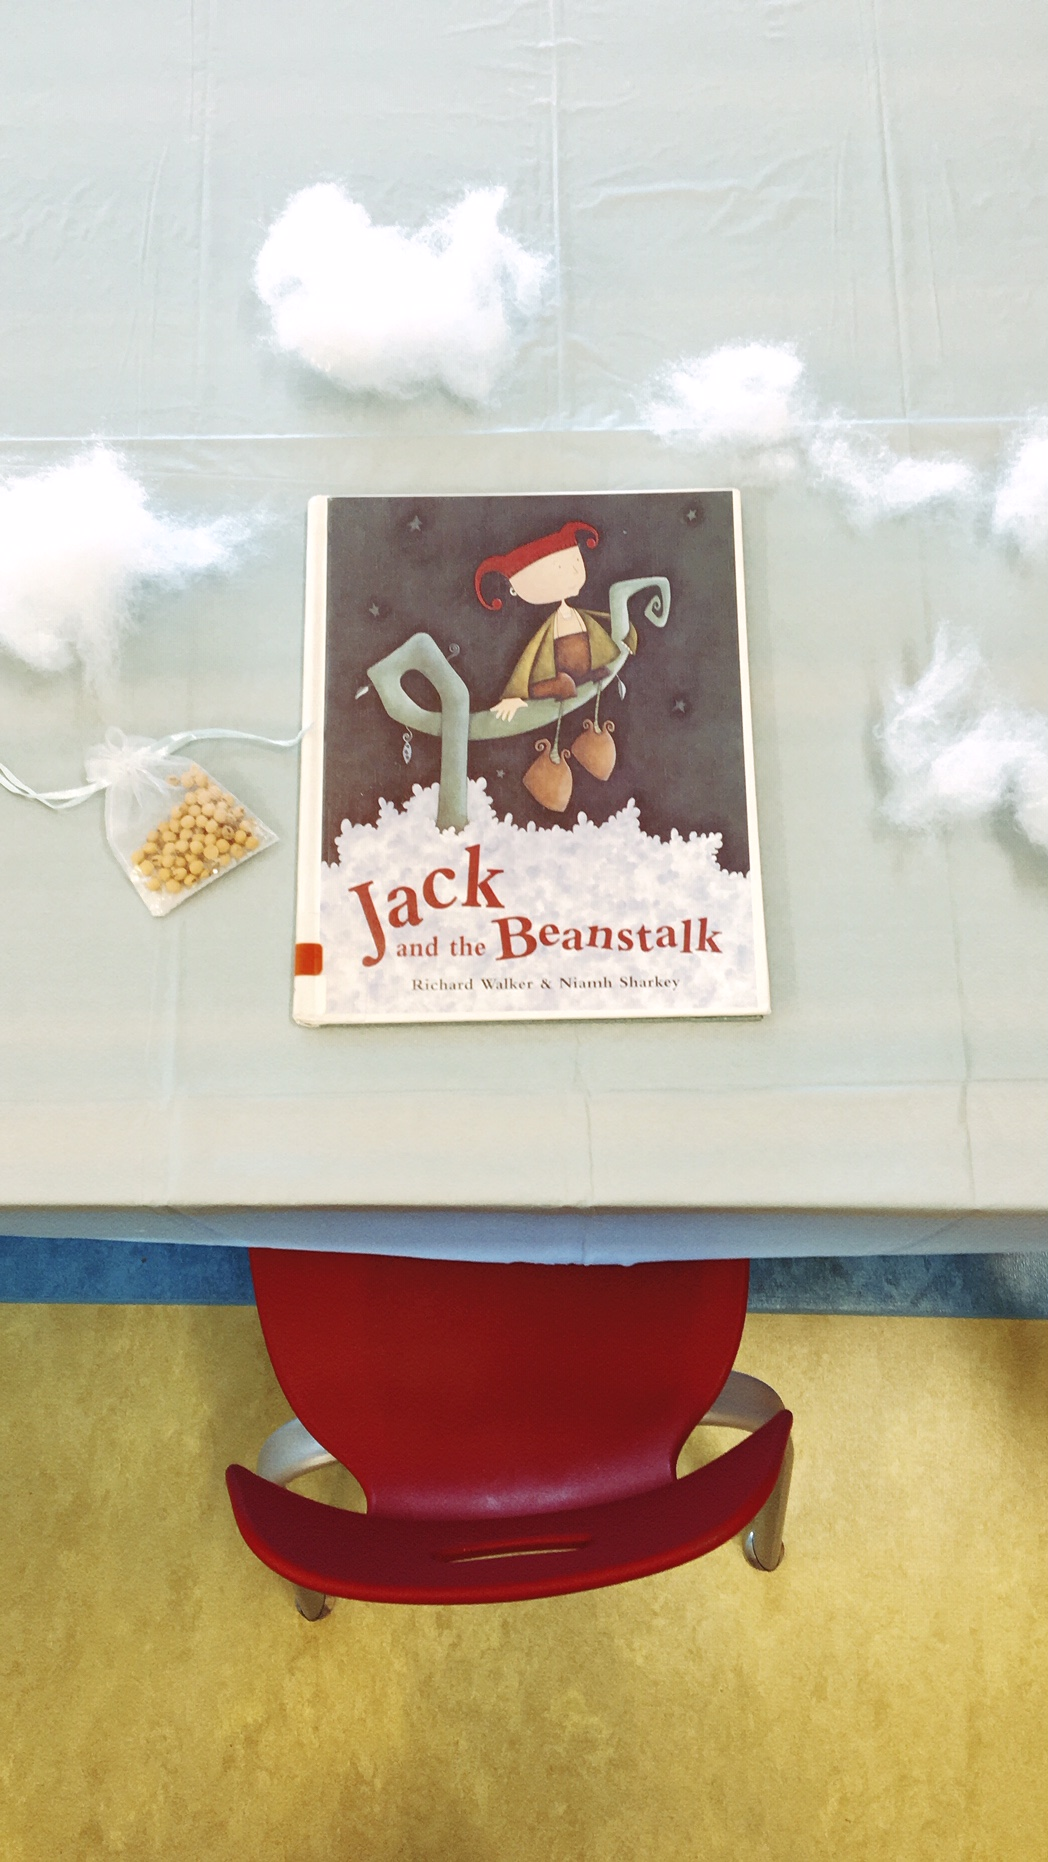 Jack and the Beanstalk Story Time #jackandthebeanstalk #party #fairytale #storytime #kidsparty #kidscraft #library #childrenslibrary